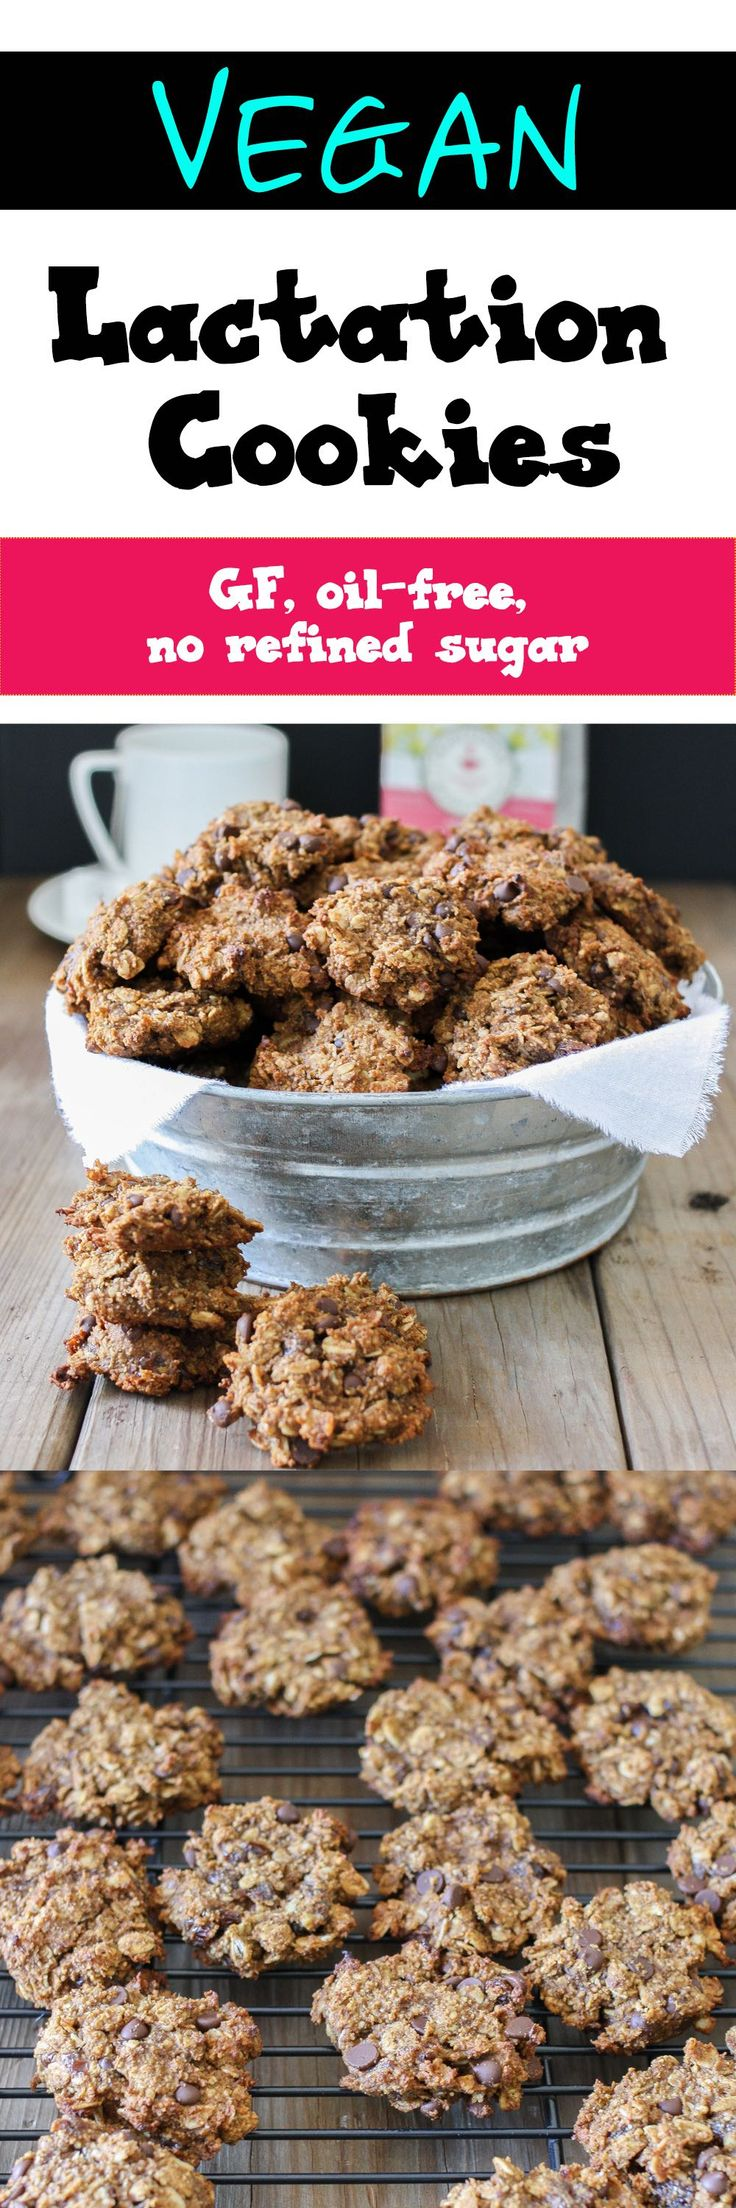 VEGAN CHOCOLATE CHIP RAISIN MACADAMIA NUT OAT LACTATION COOKIES | http://www.veggiesdontbite.com | #vegan #glutenfree #nooil #oats #chocolate #raisins